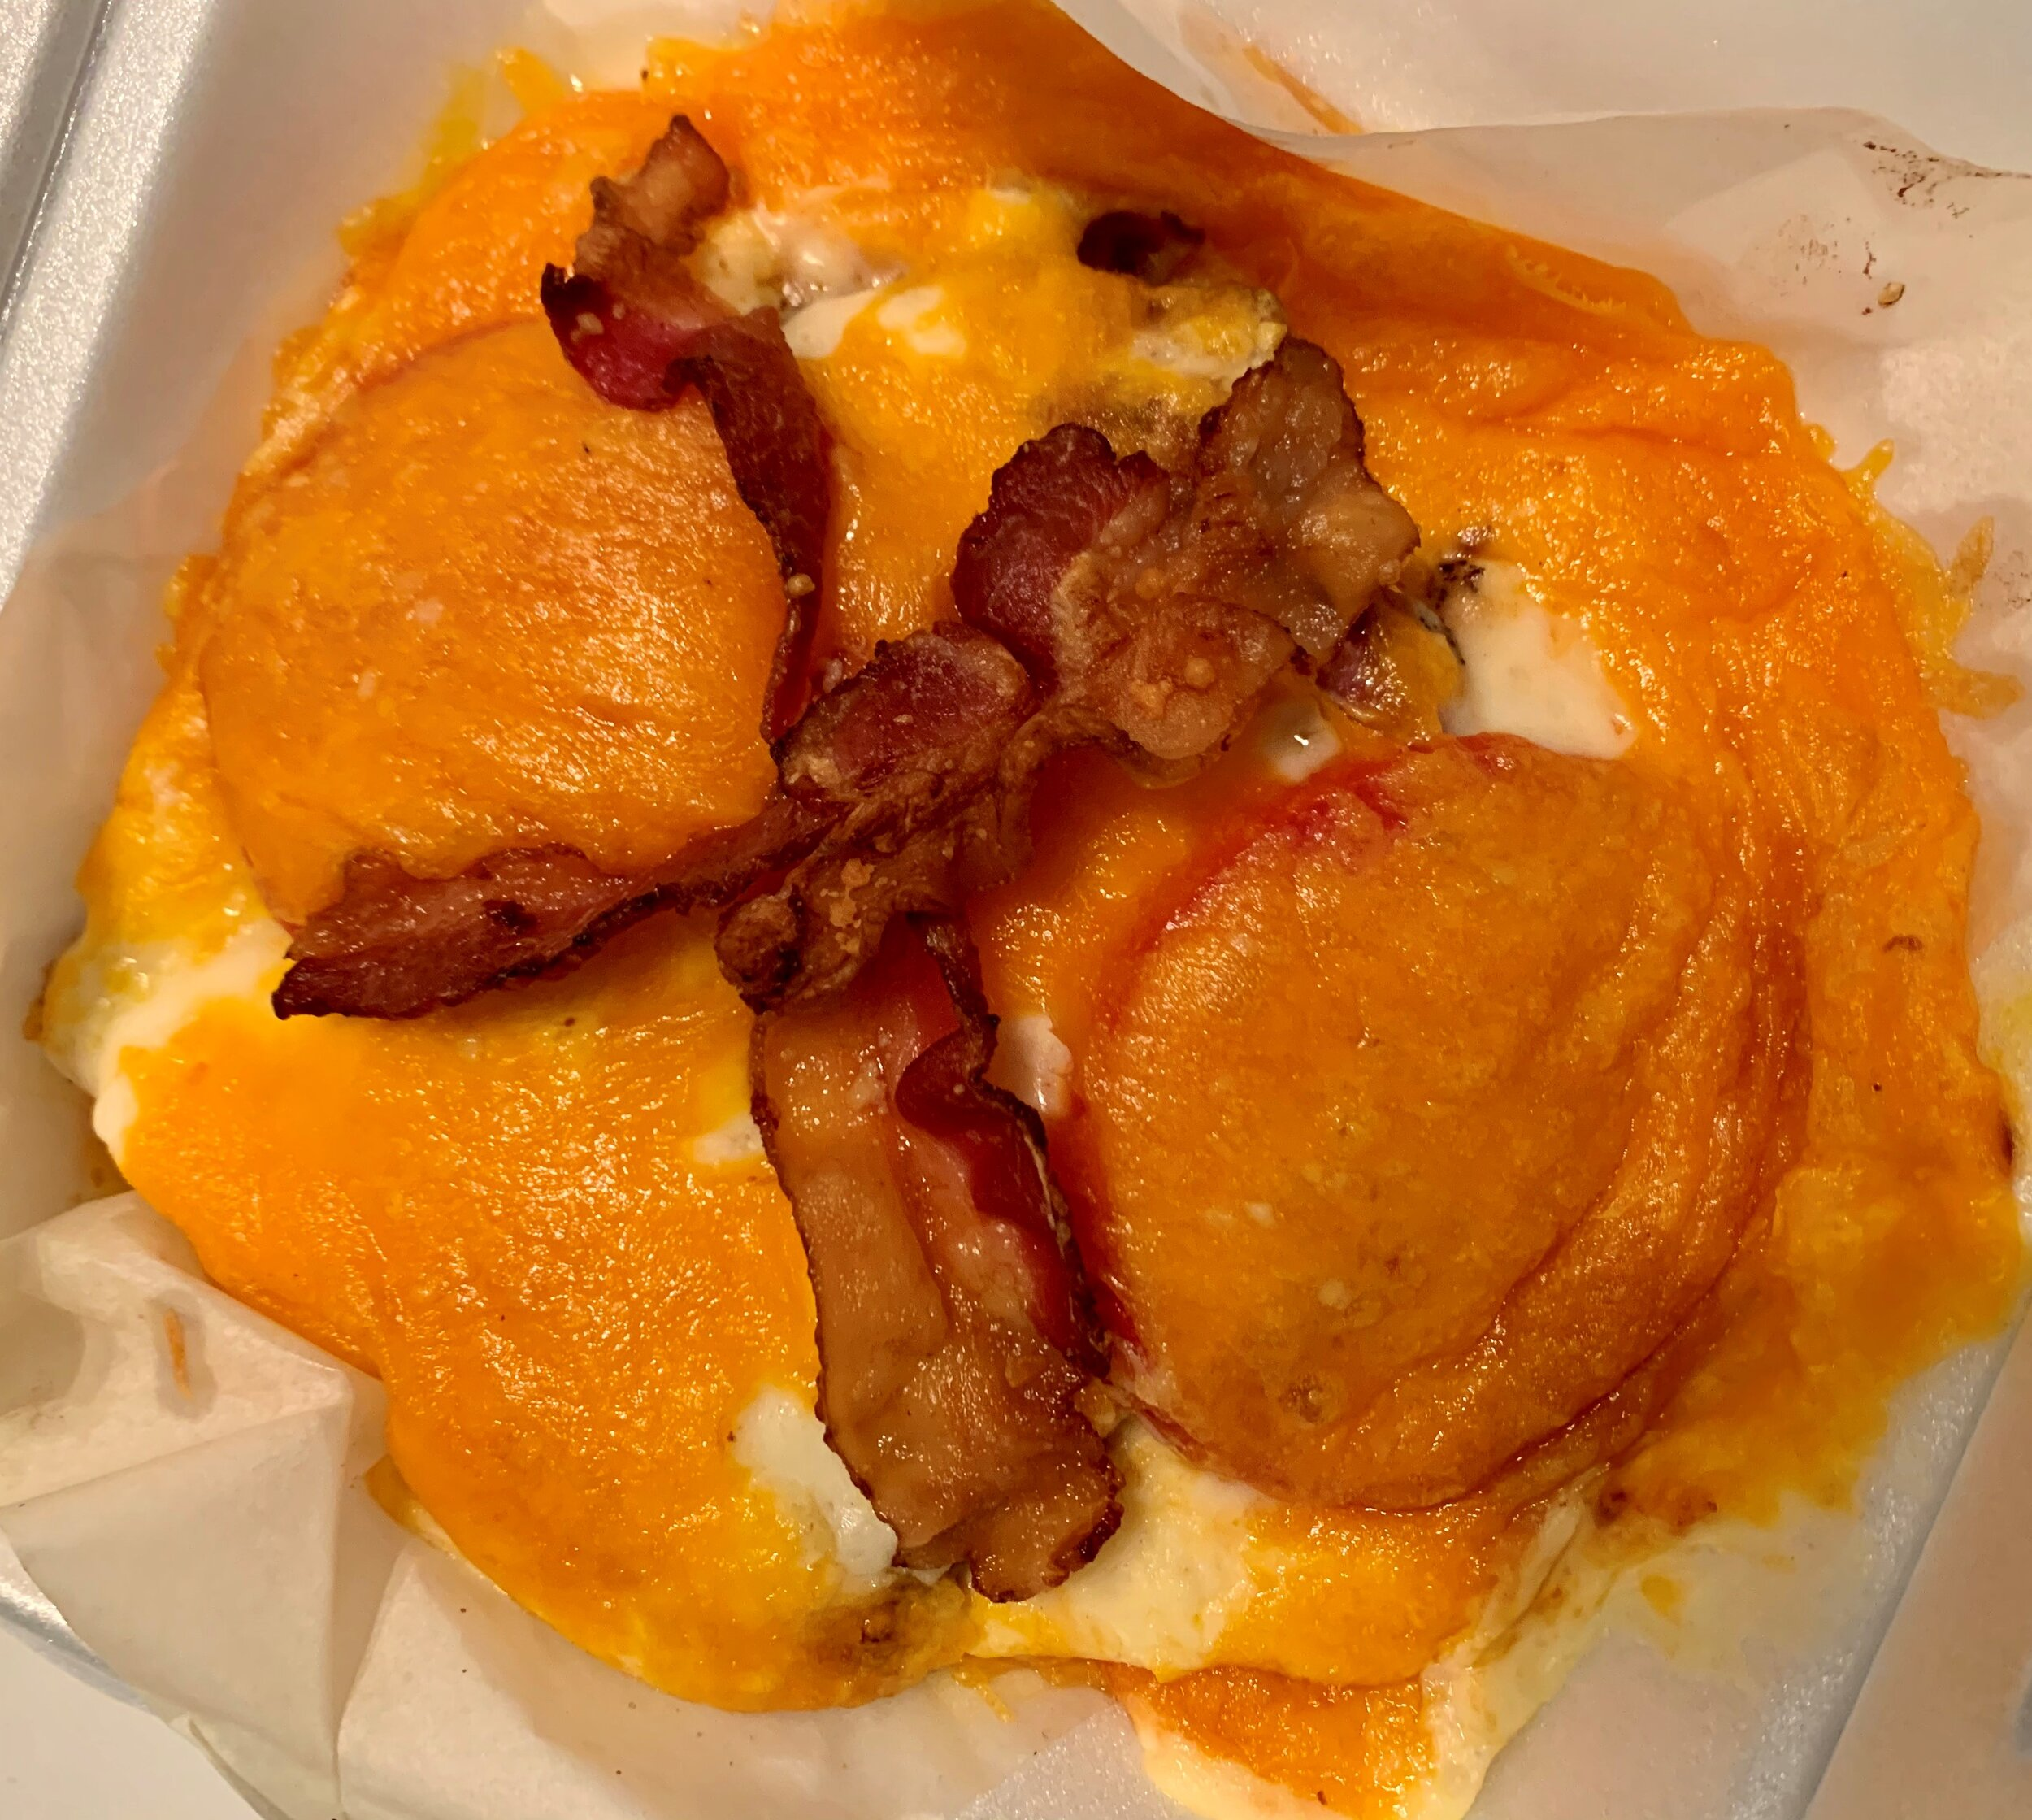 Hot Brown on our Food Bucket List. Image courtesy of Candace from Where I've Been